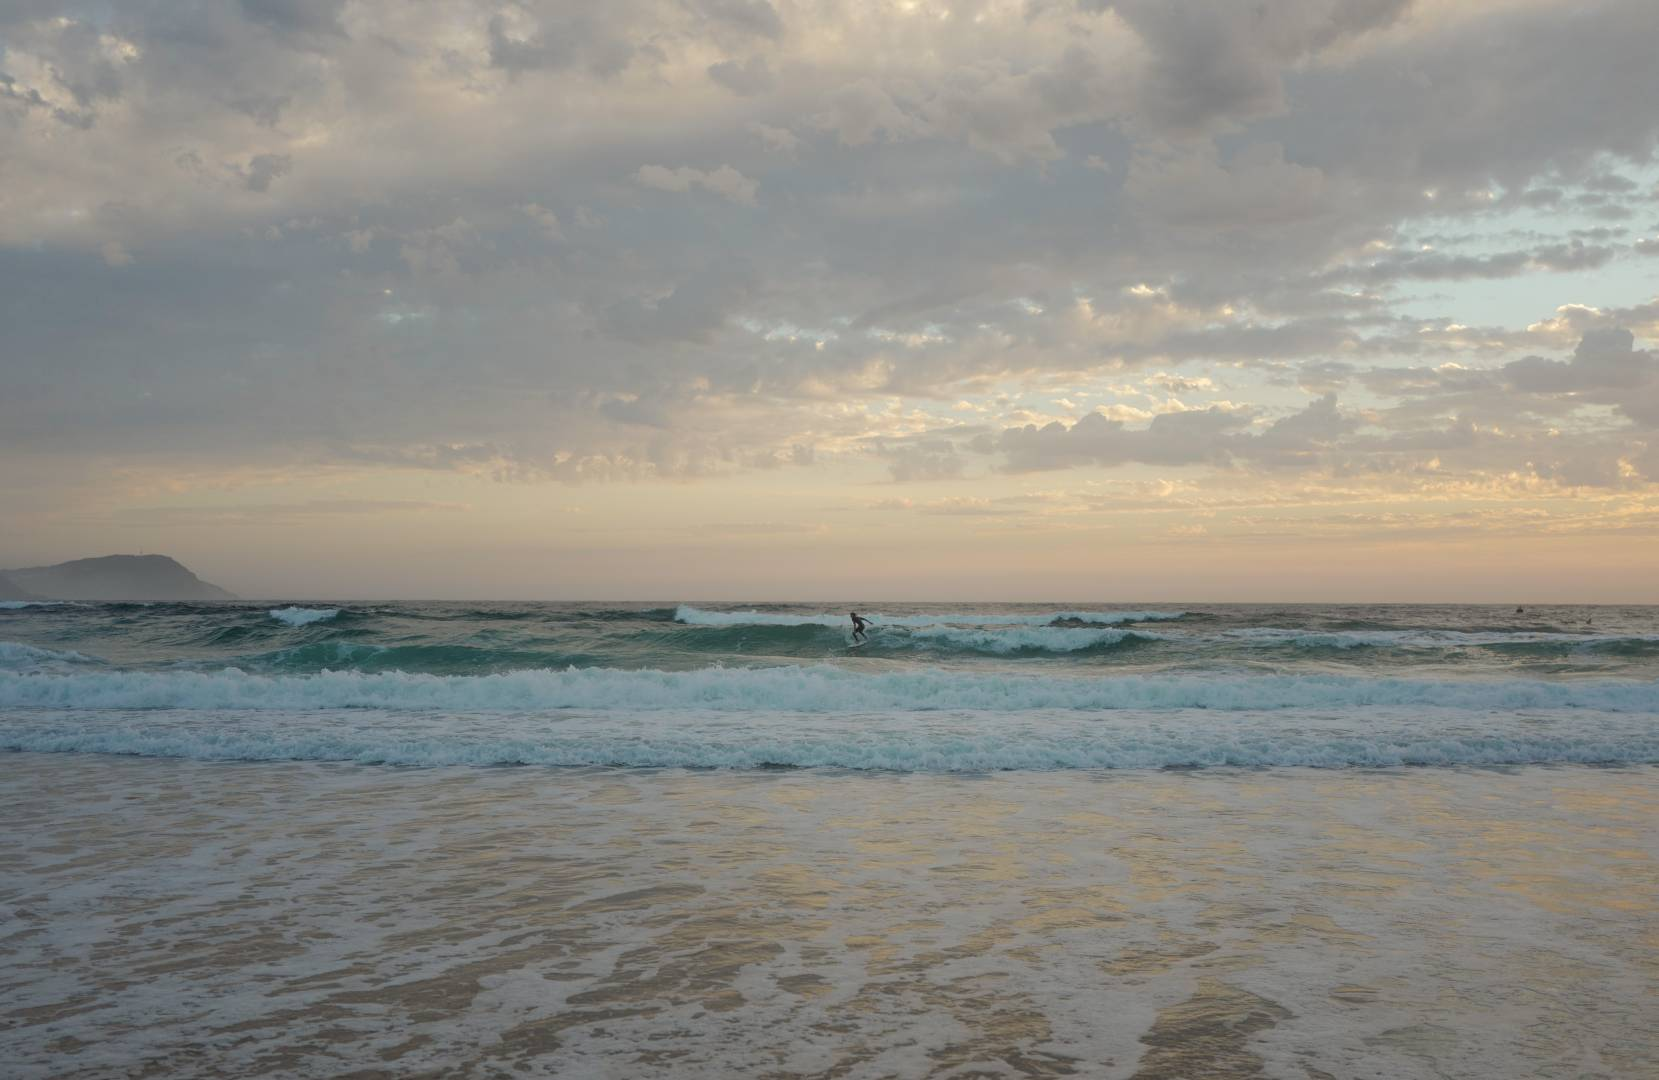 The last word on social distancing: Could surfing be the last safe pastime?